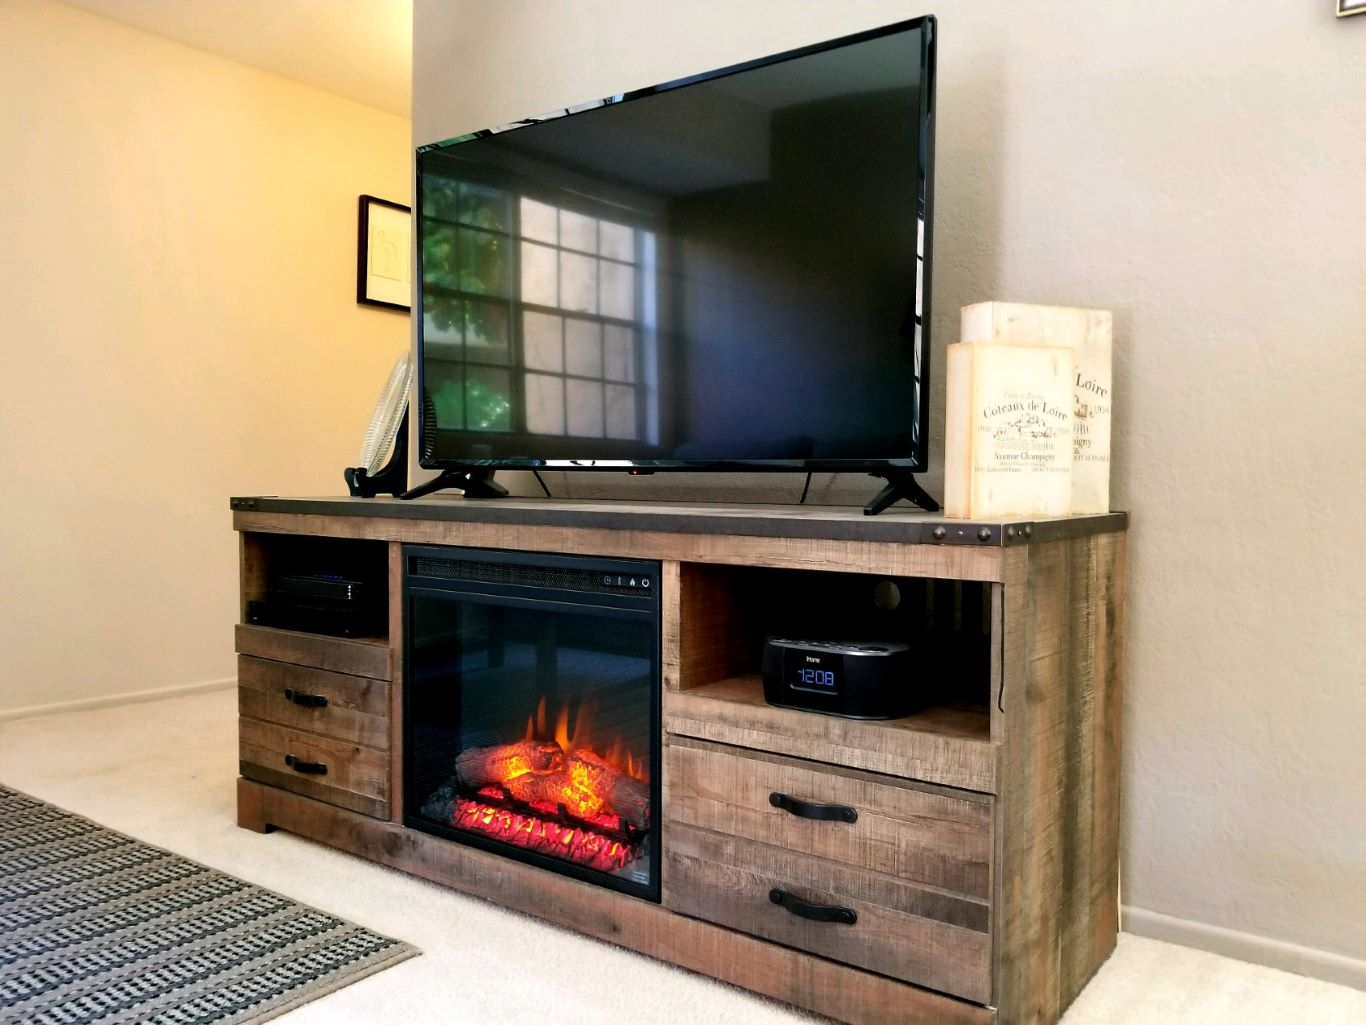 Entertainment Center with Built-In Fireplace